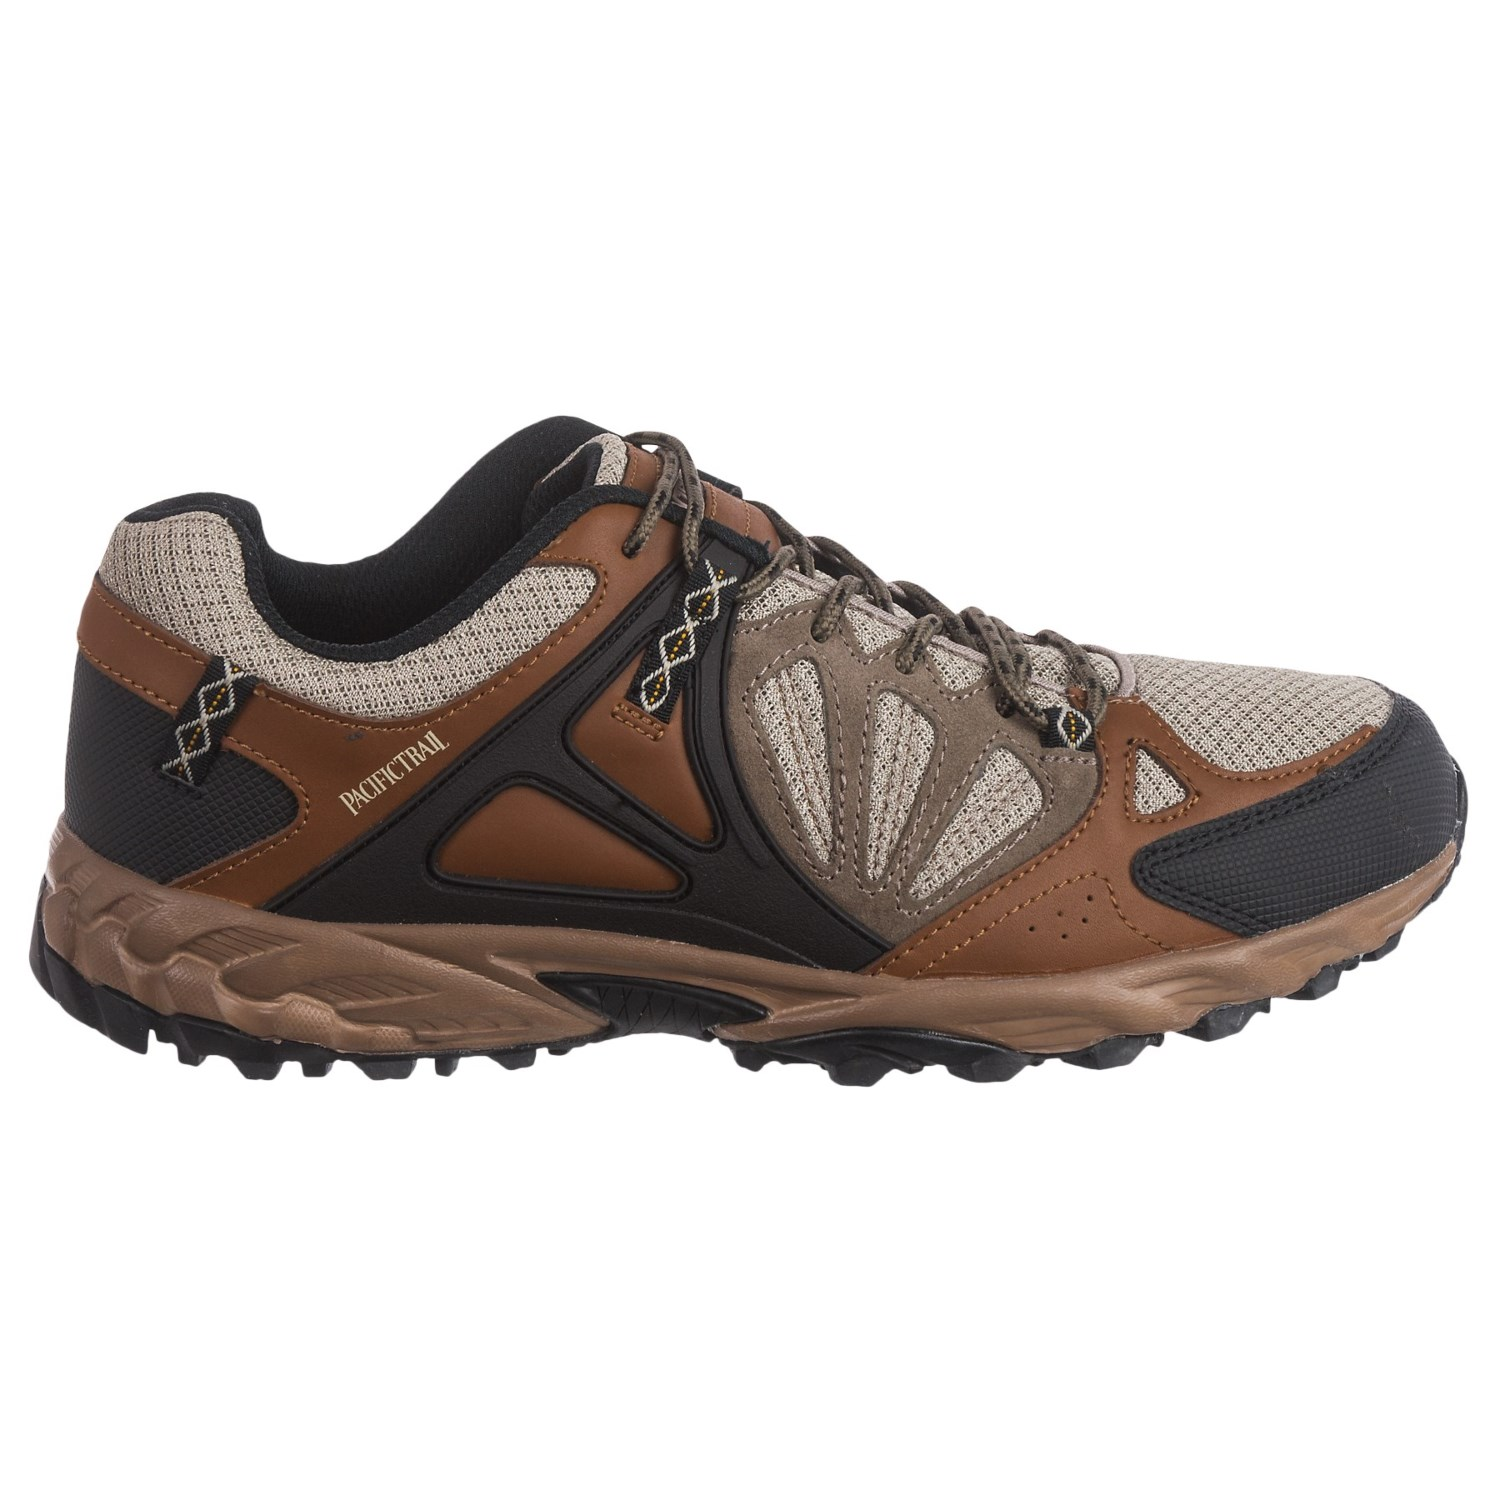 Pacific Trail Women S Hiking Shoes